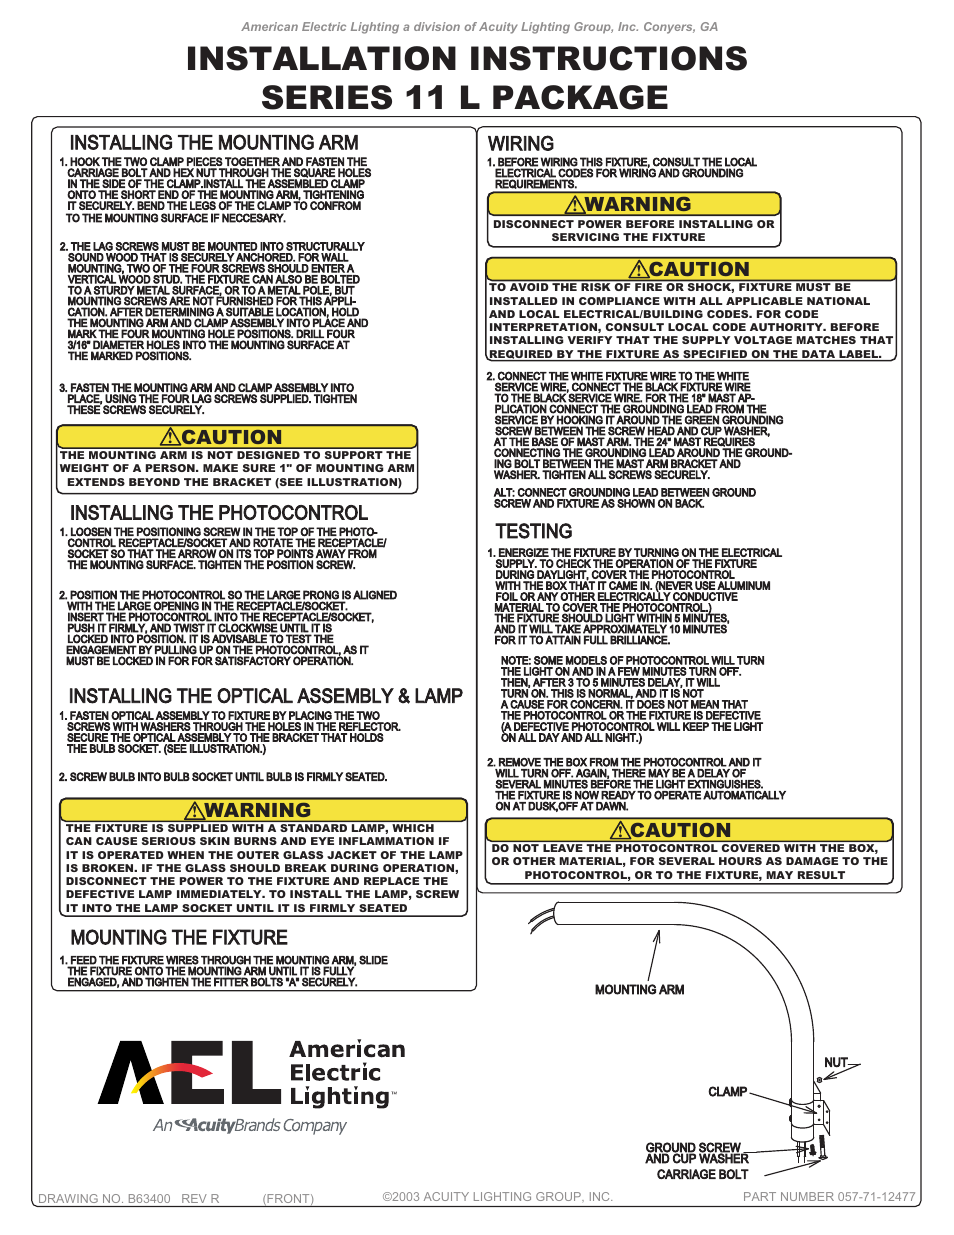 American Electric Lighting Series 11 Package User Manual | 2 pages